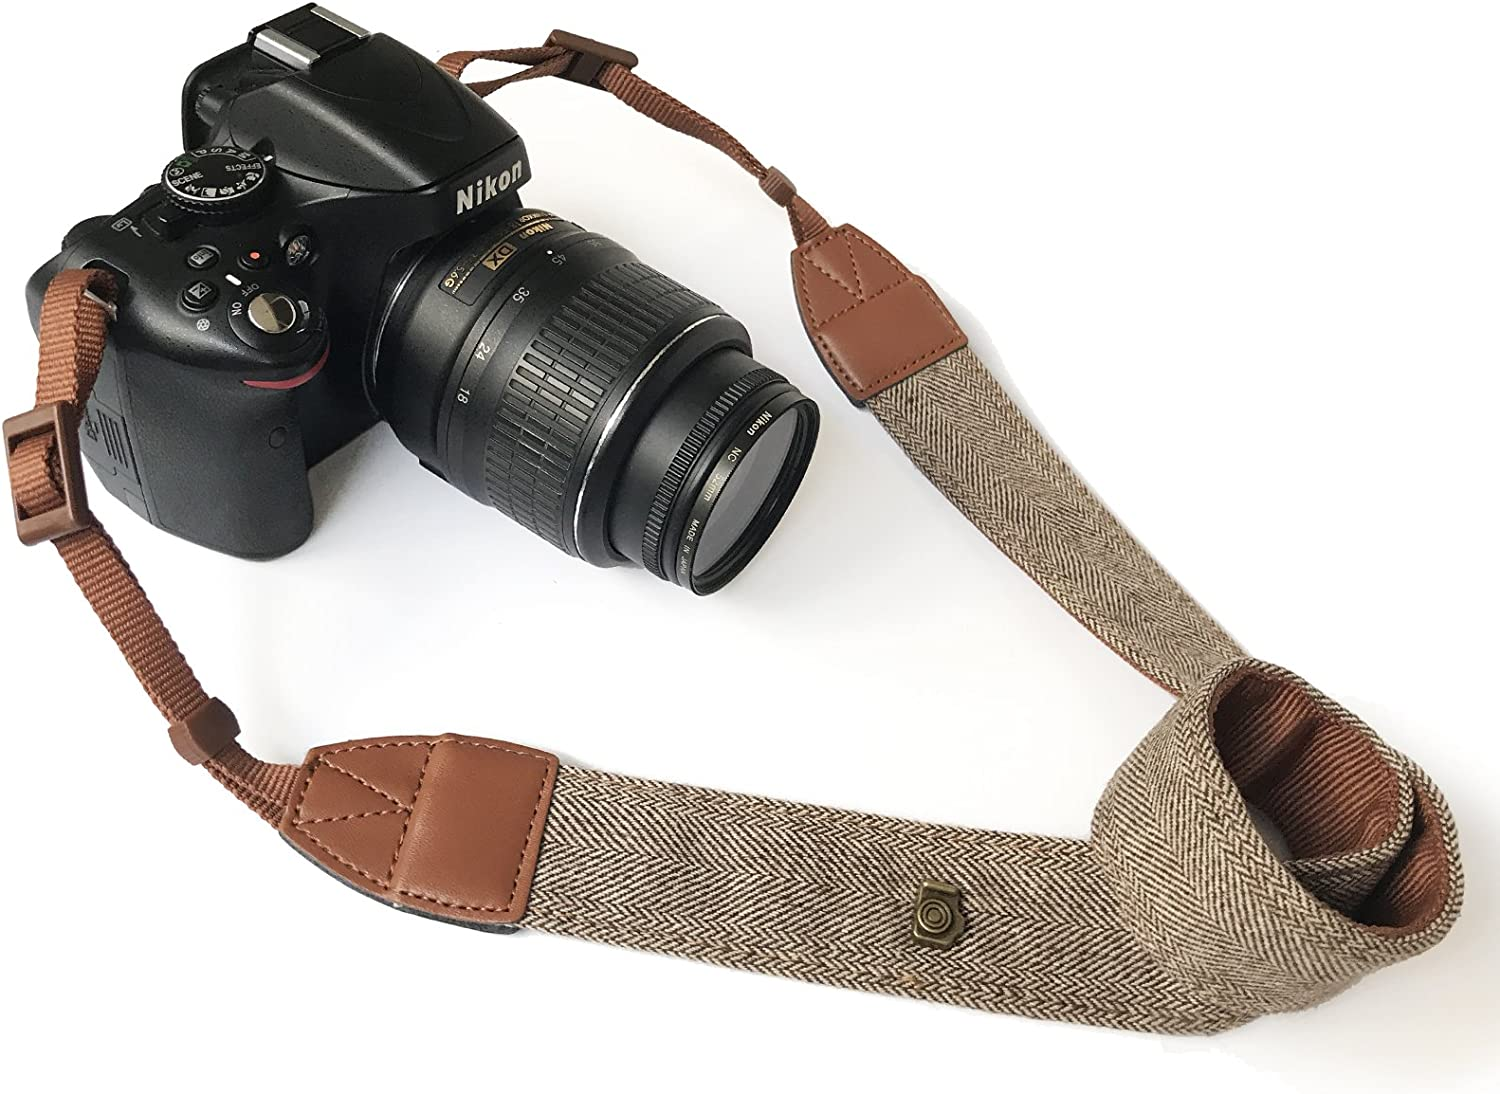 LIFEMATE Woven Vintage Soft Camera Strap Belt for All DSLR Camera Nikon,Pentax Fujifilm and Digital Camera Sony Neck Shoulder Camera Strap for Canon Geometry 1